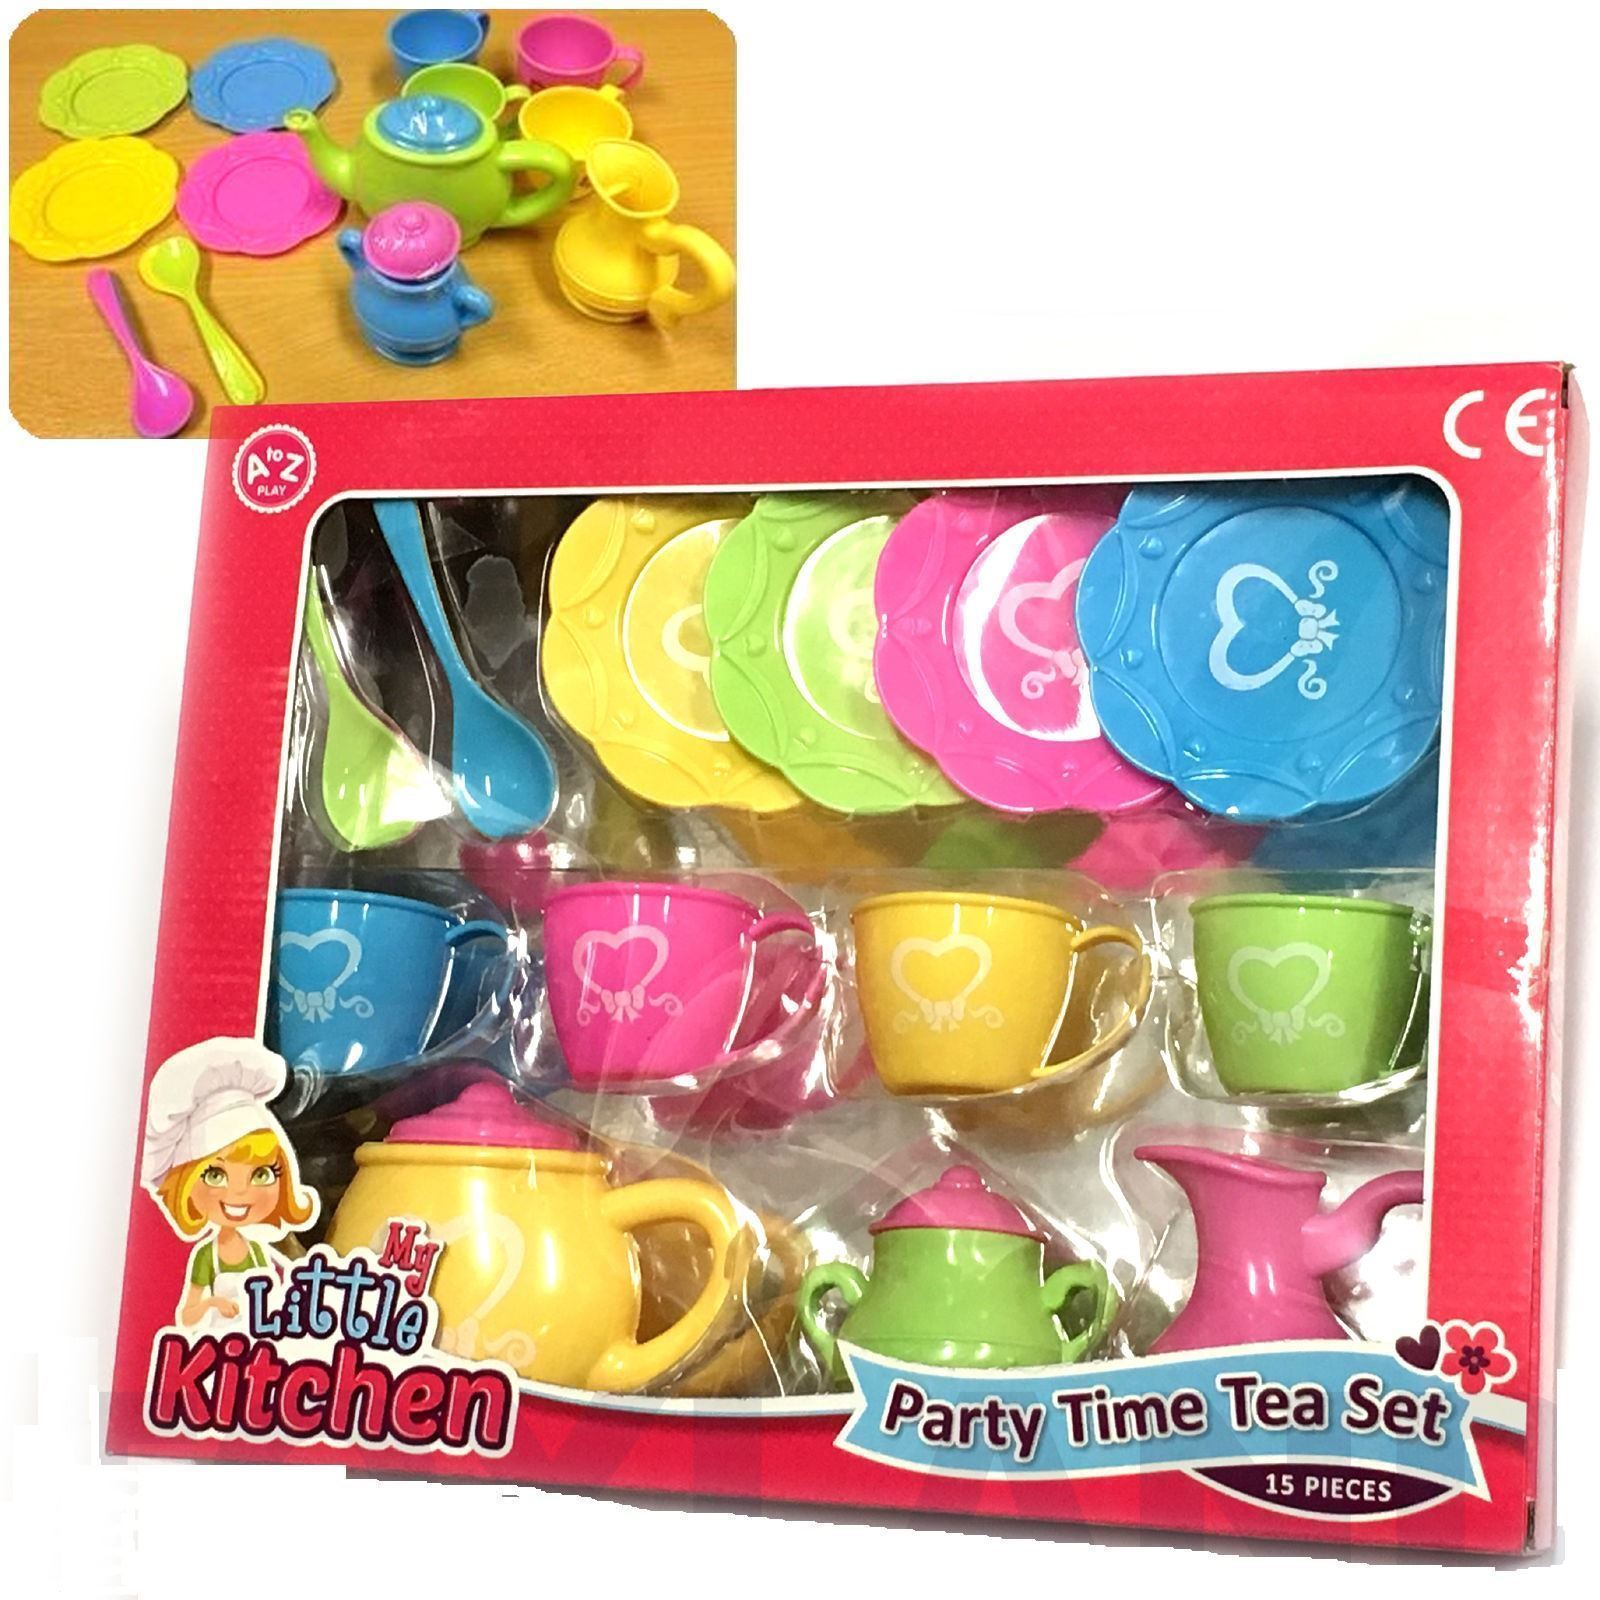 My Little Kitchen Party Time 15 Piece Tea Set